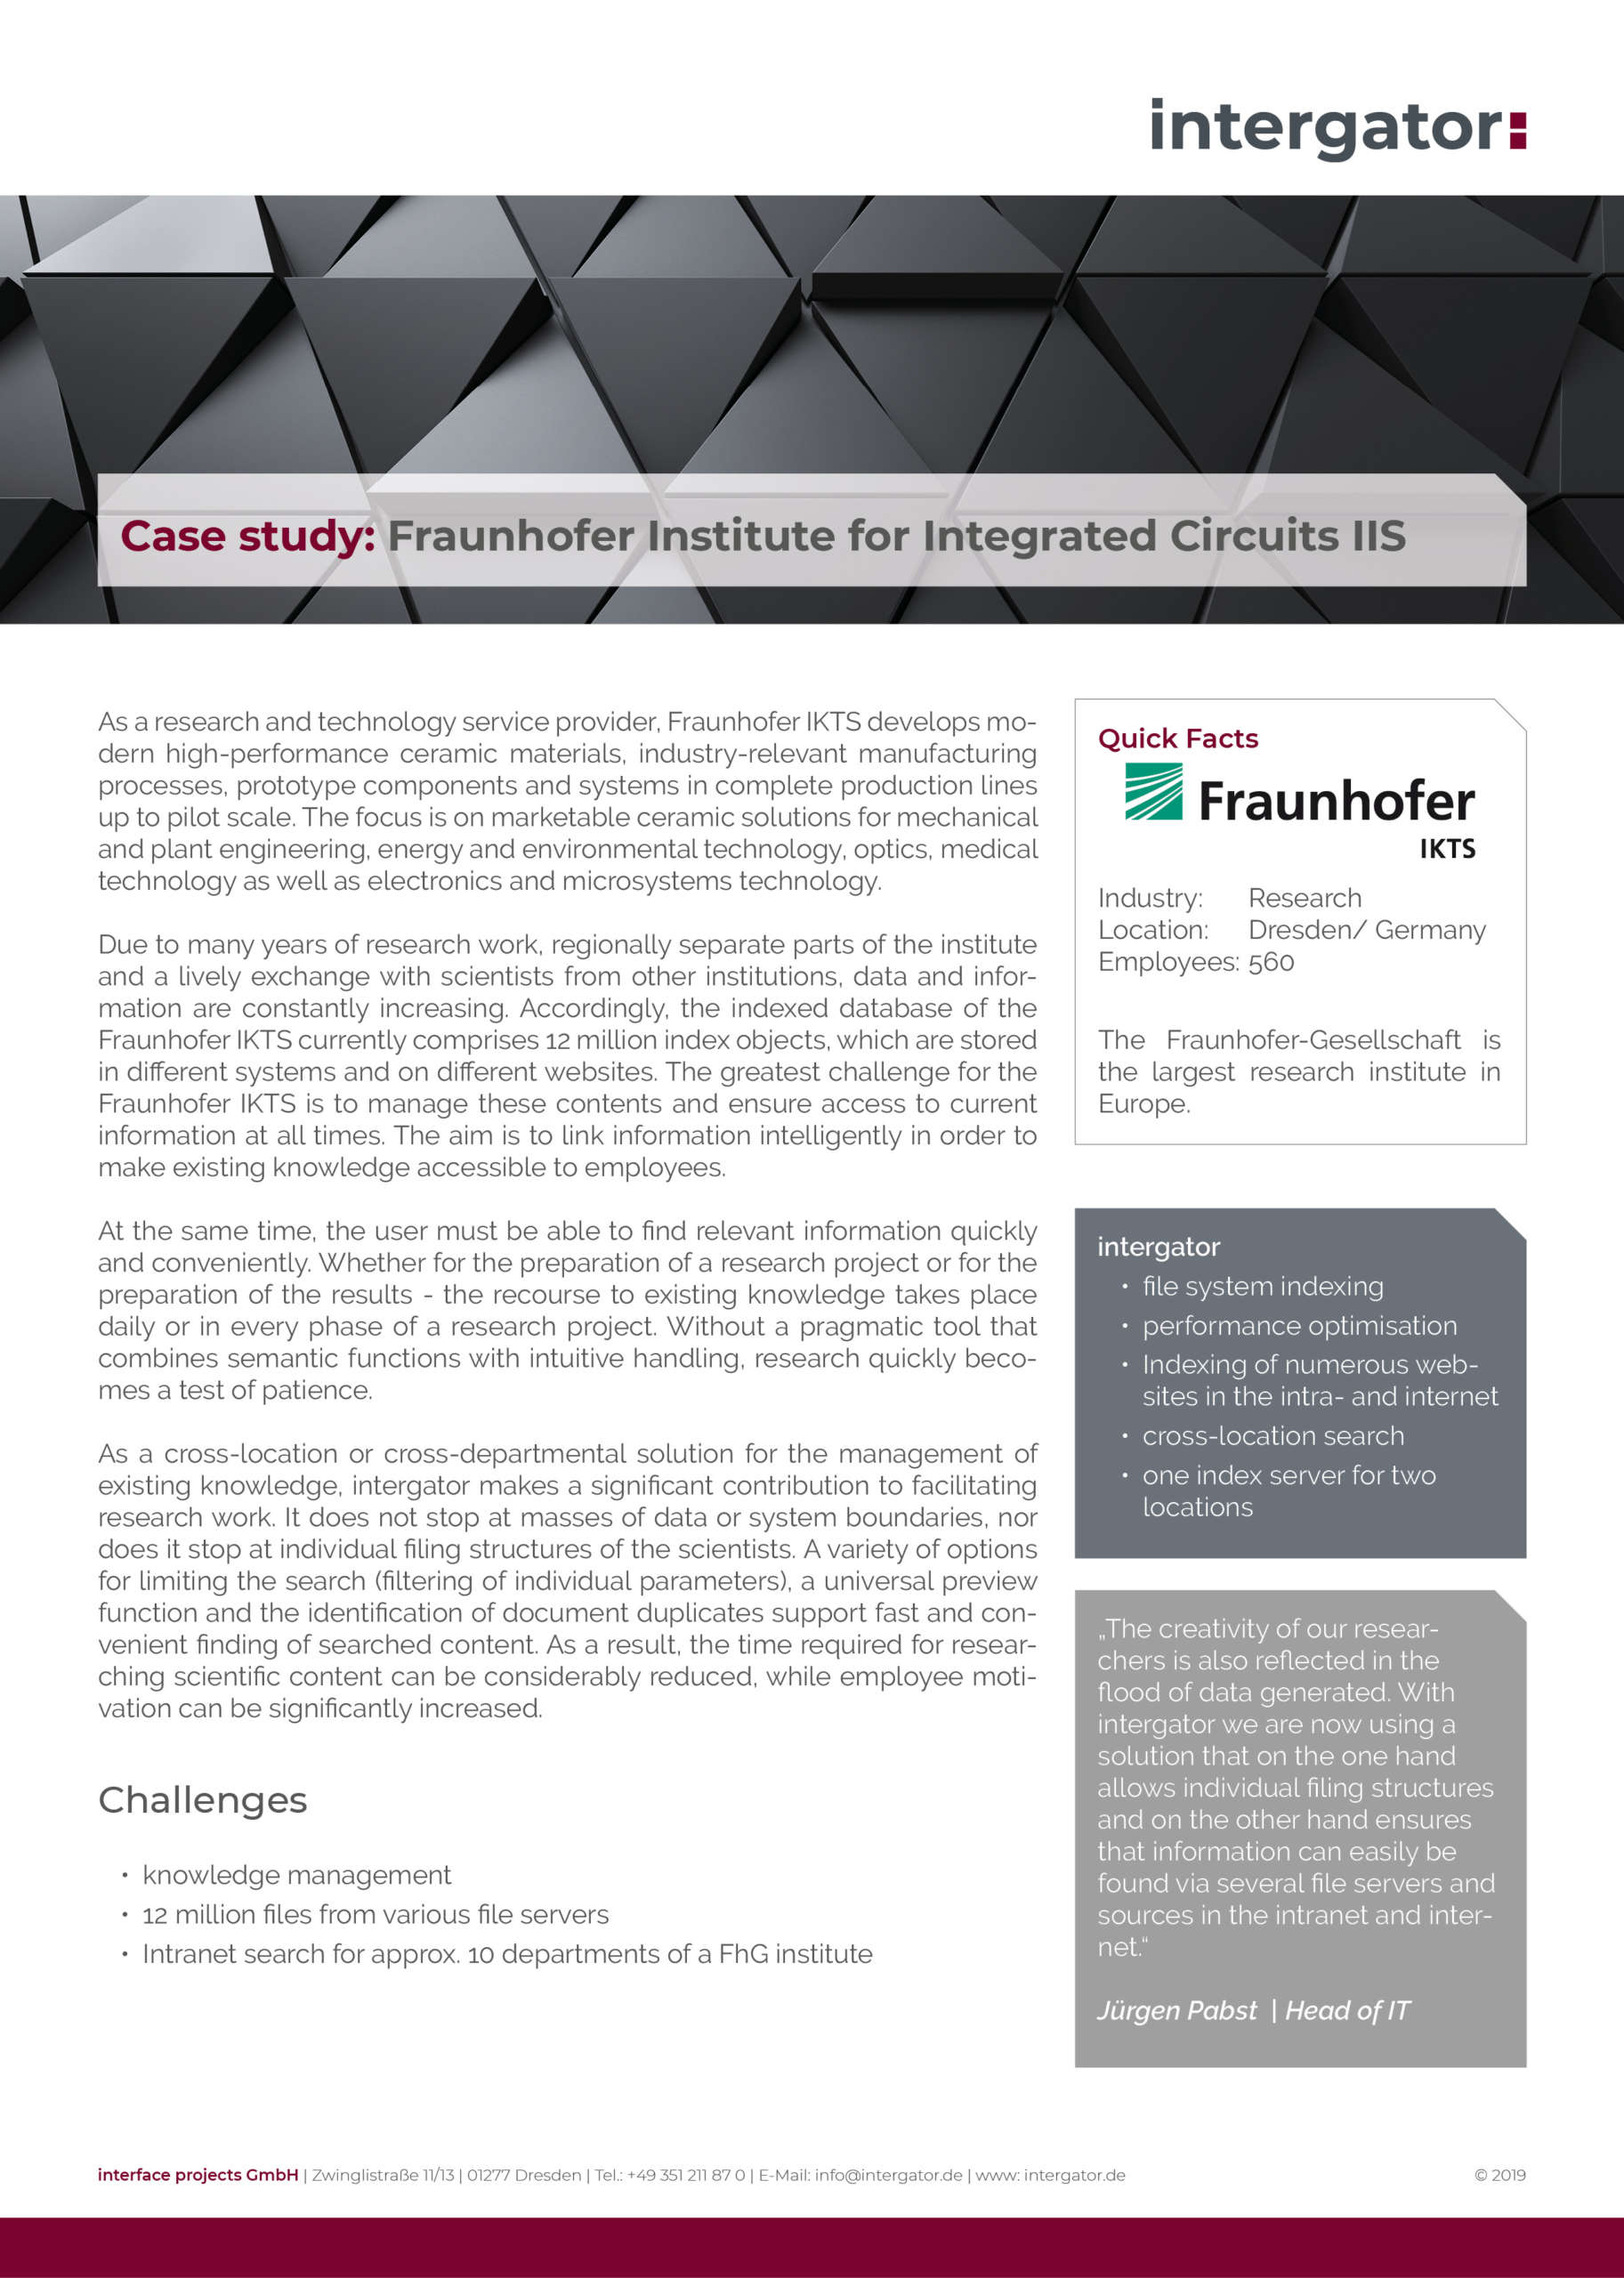 Case Study: Fraunhofer Institute for Ceramic Technologies and Systems